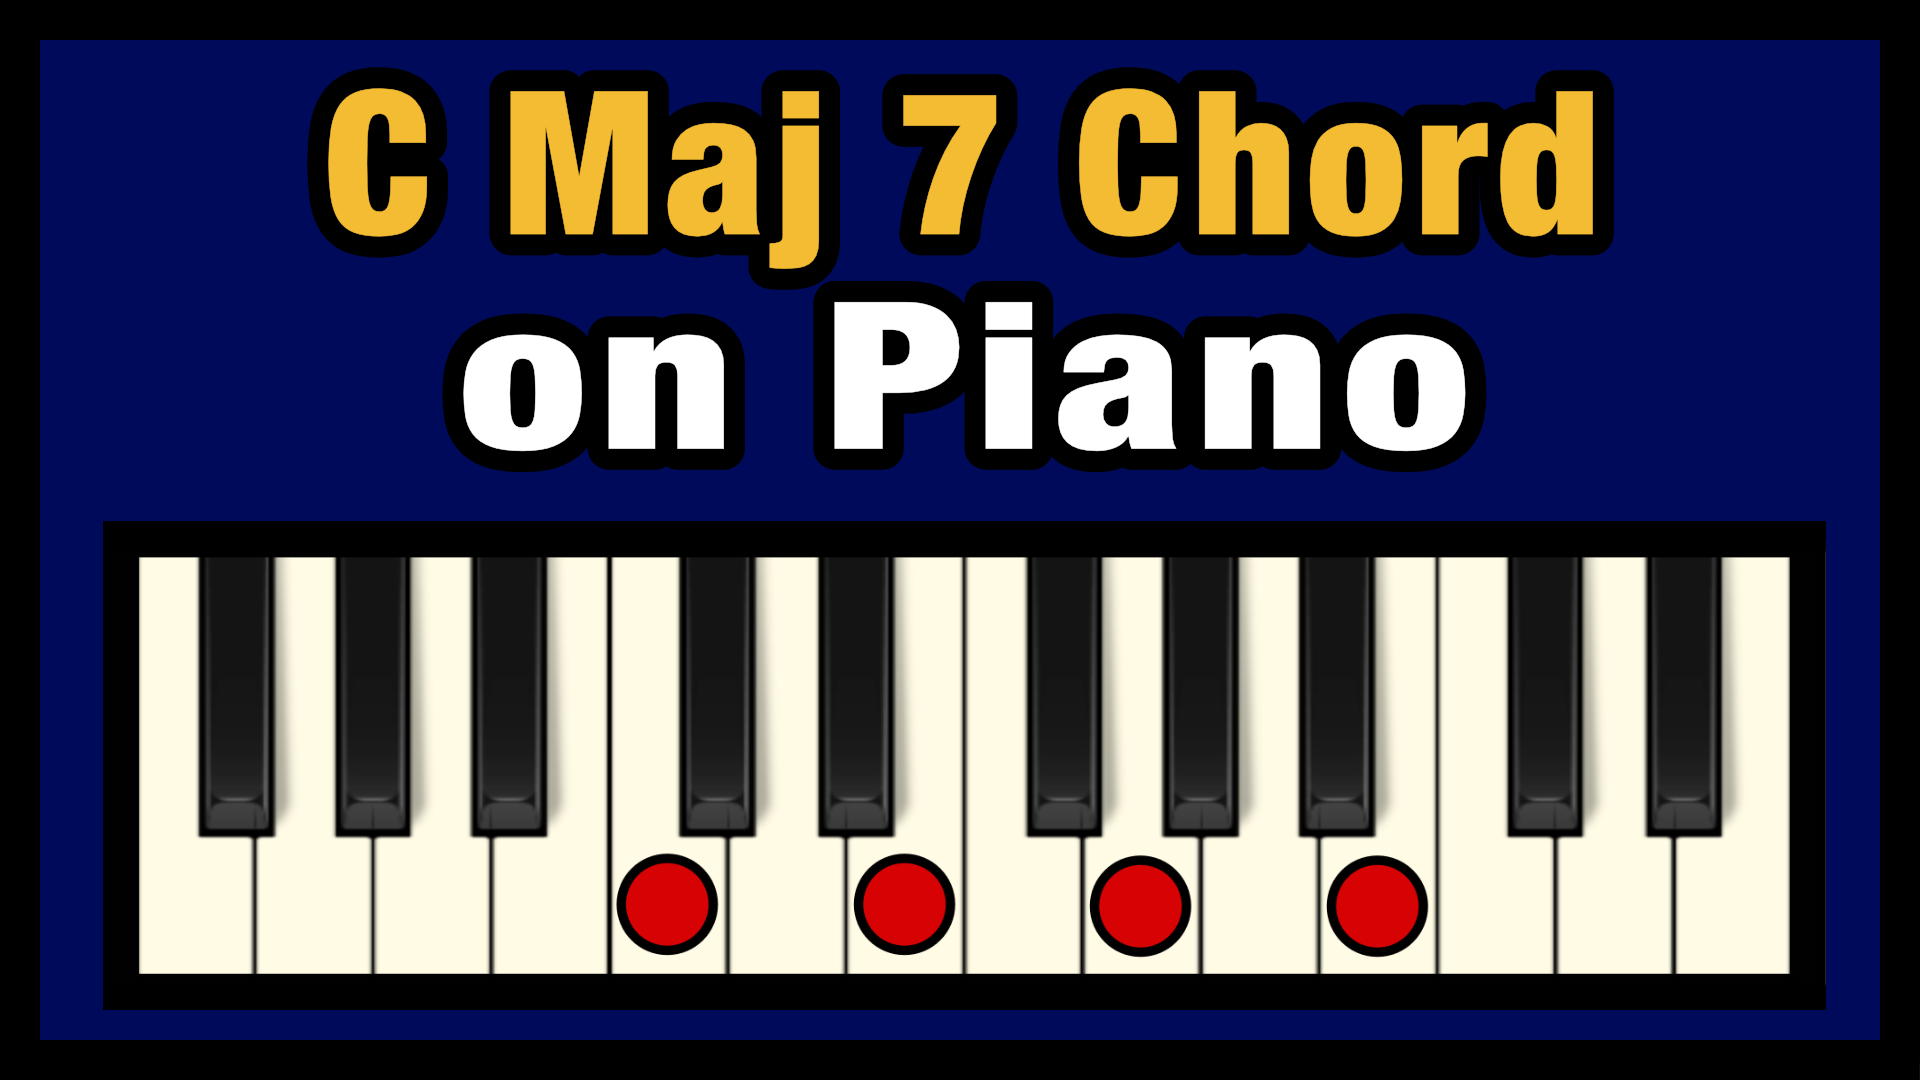 C Maj 15 Chord on Piano Free Chart   Professional Composers